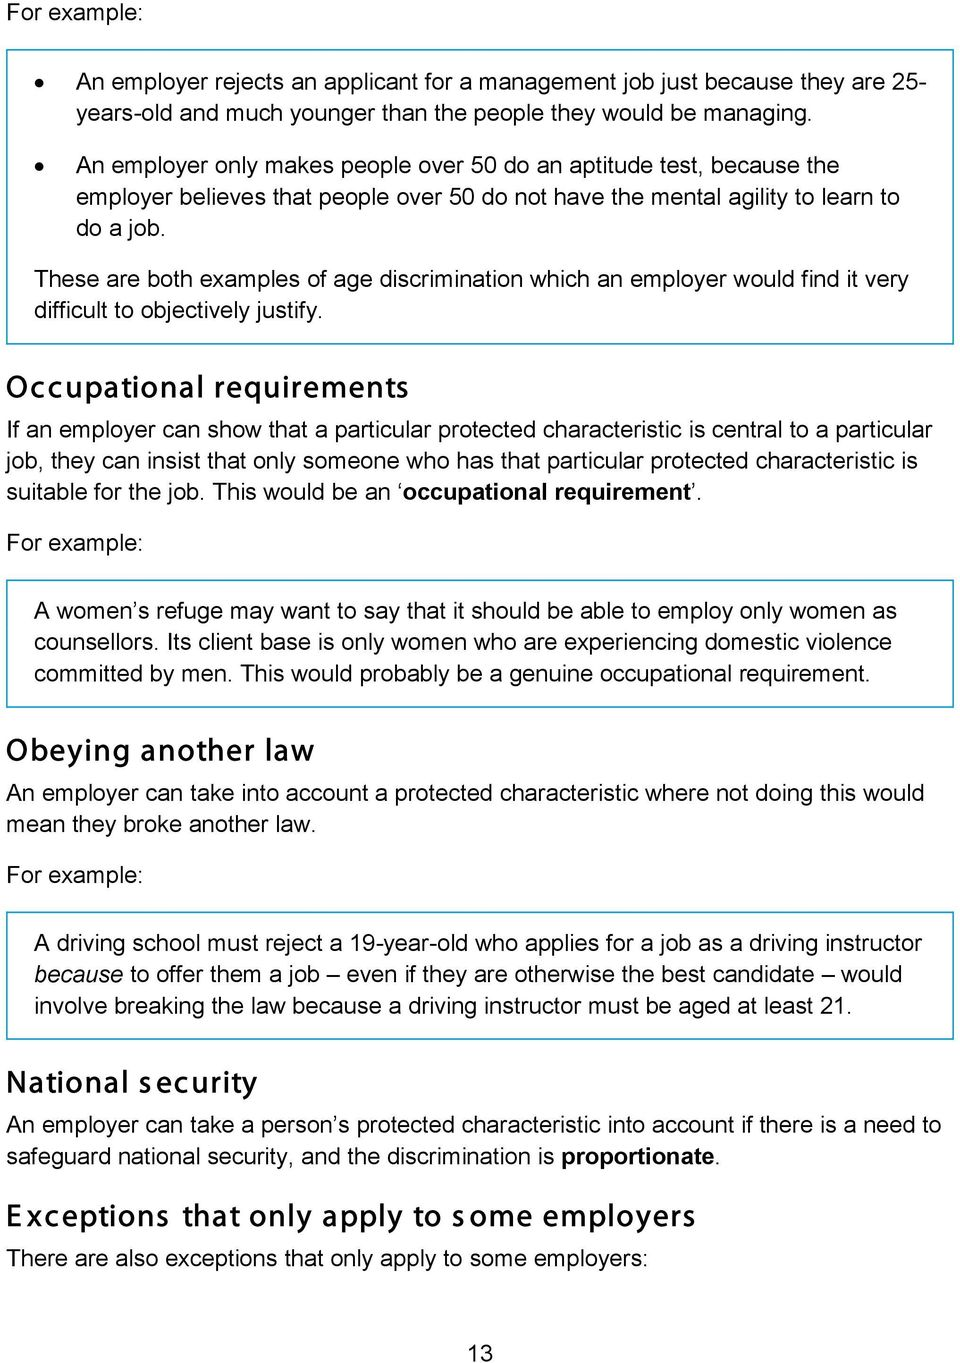 These are both examples of age discrimination which an employer would find it very difficult to objectively justify.